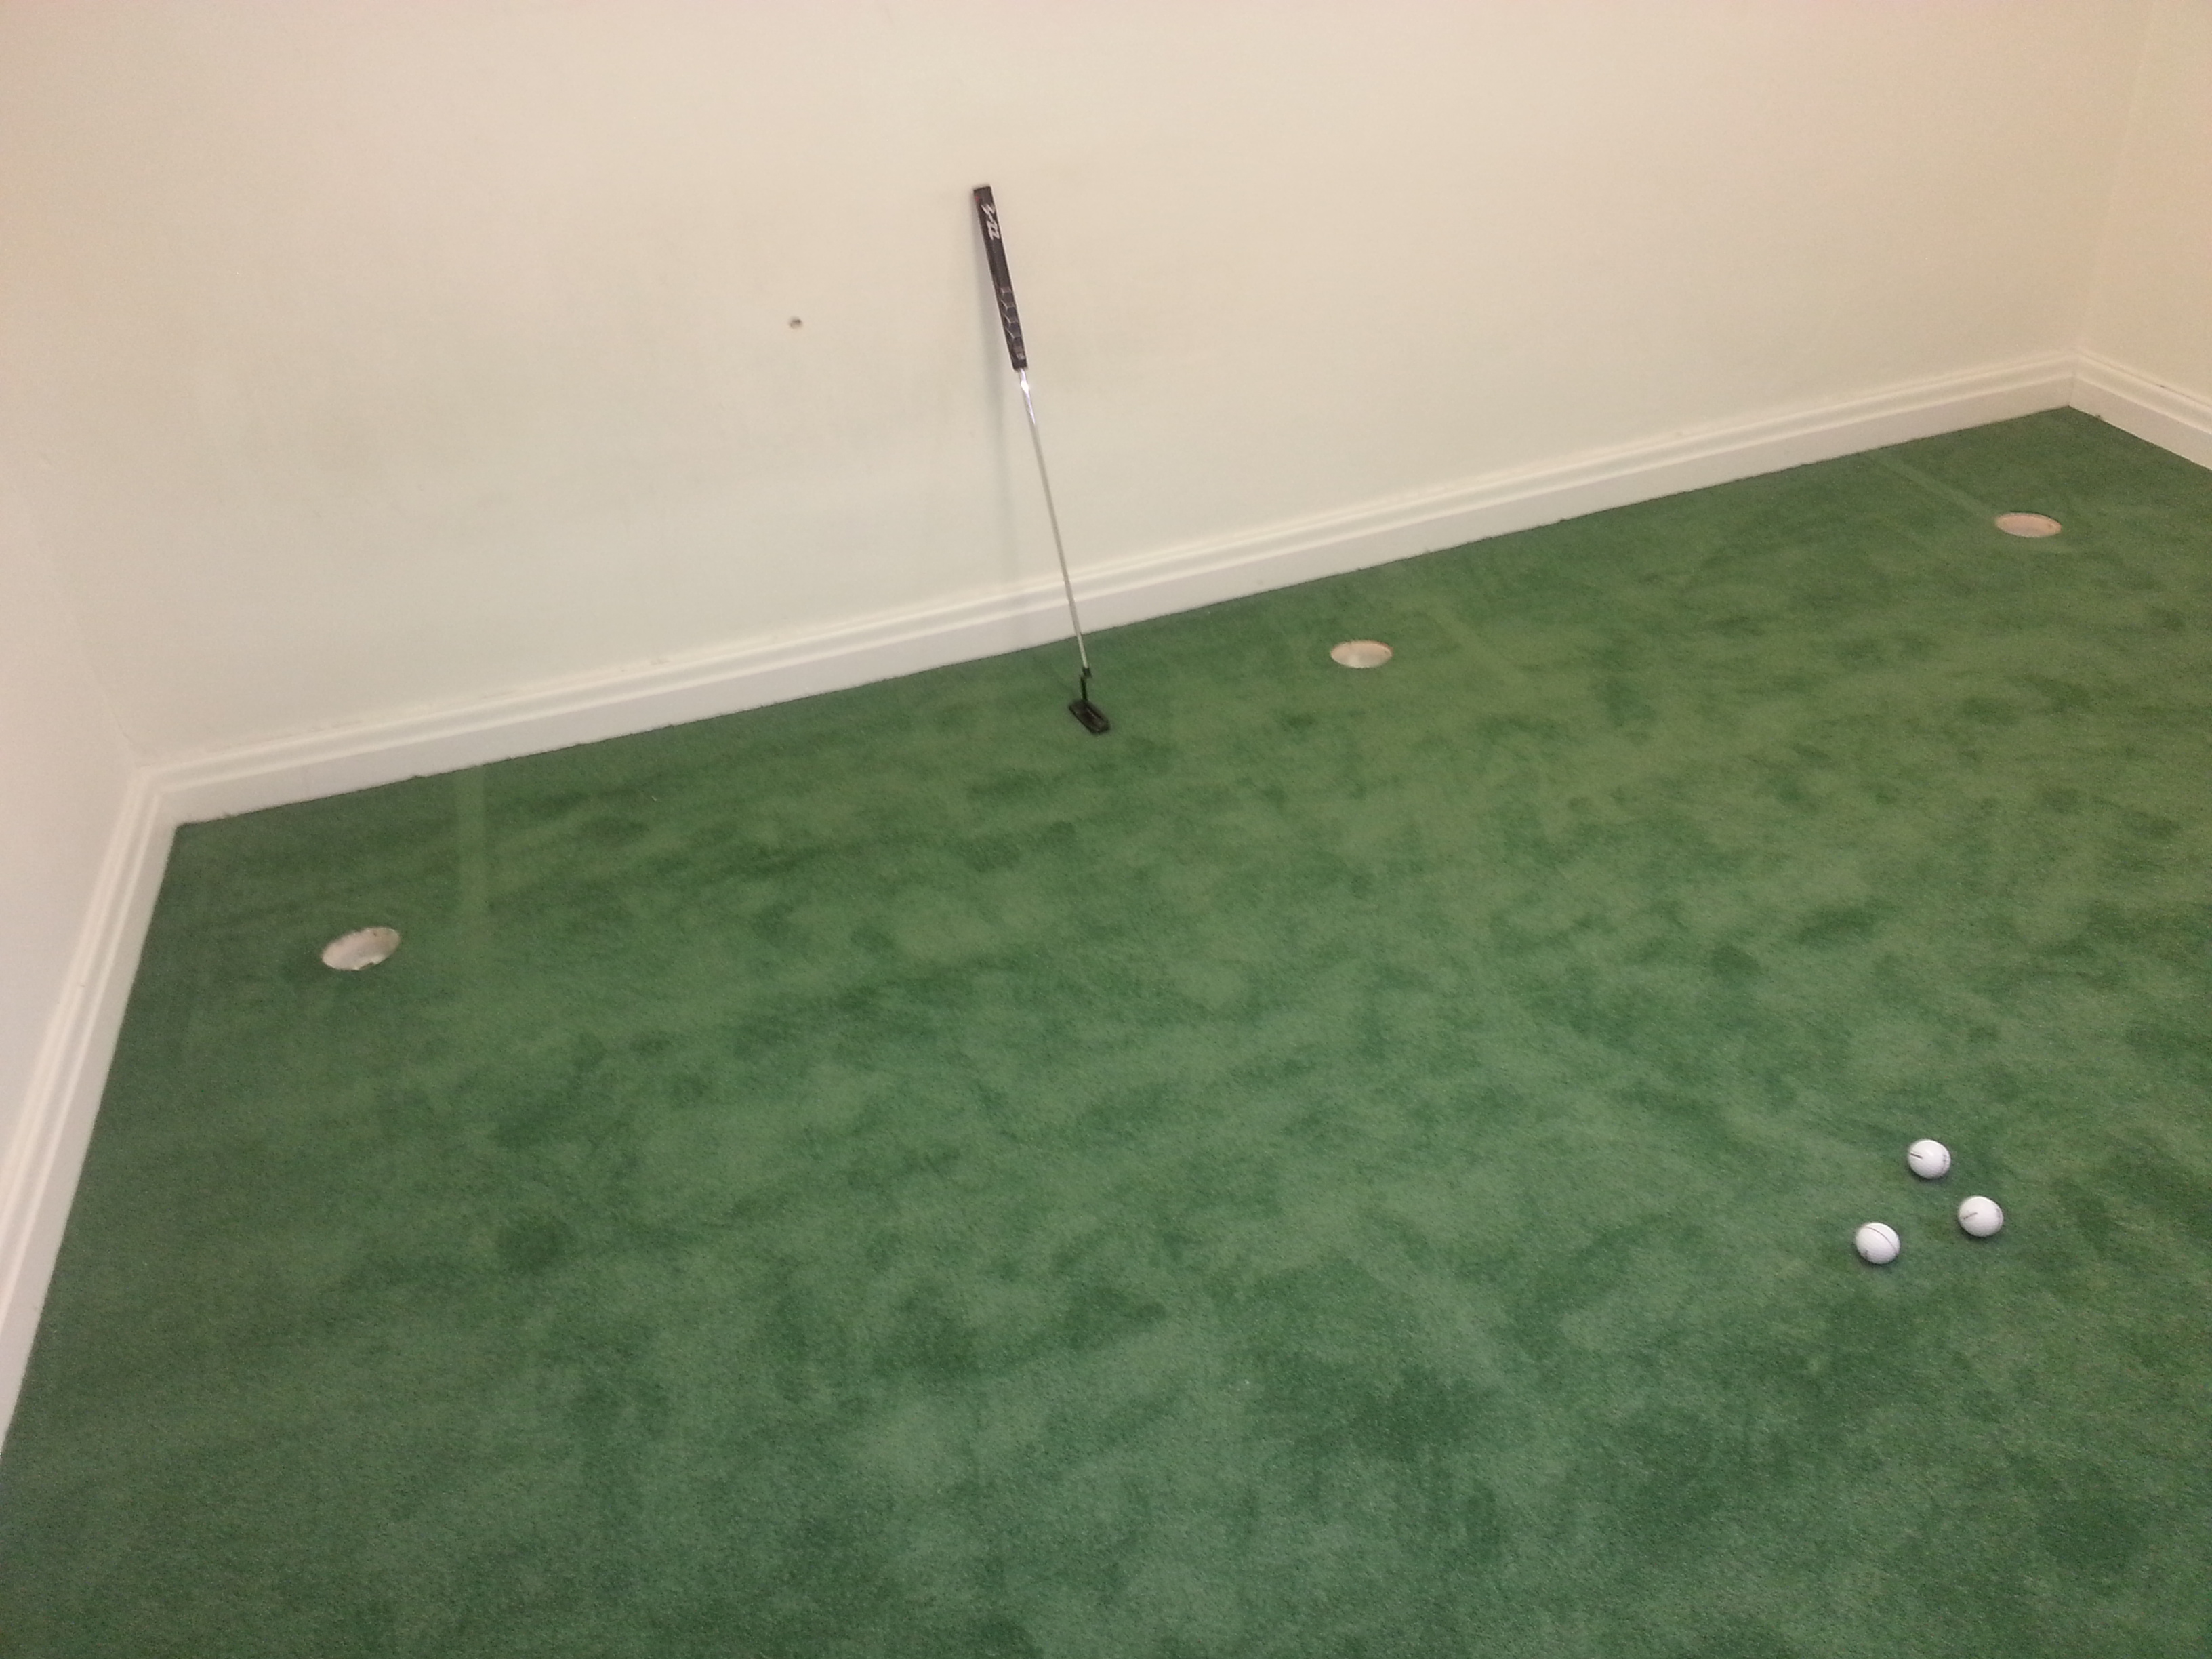 Indoor Putting Green Carpet - Balls, Carts/Bags, Apparel, Gear, Etc ...